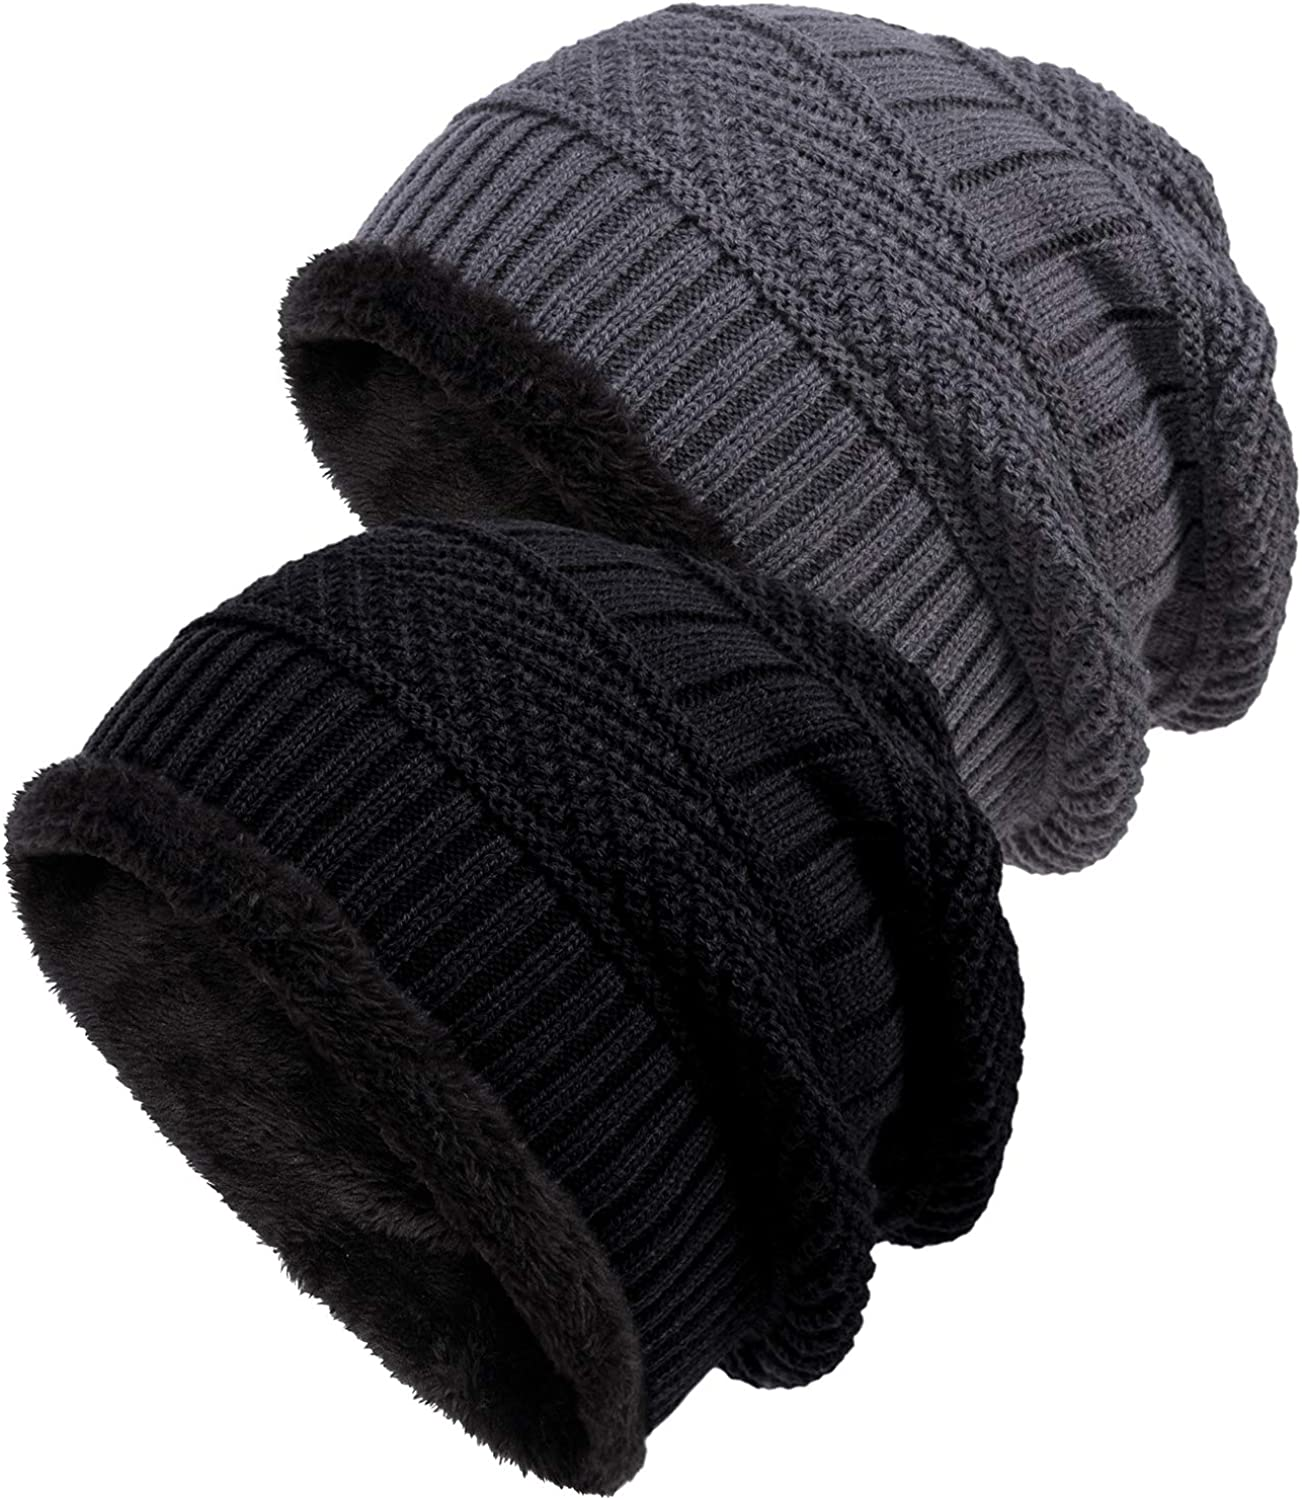 Loritta 2 Pack Winter Hat Knit Wool New color Warm Baggy Slouchy Thick 1 year warranty Sku